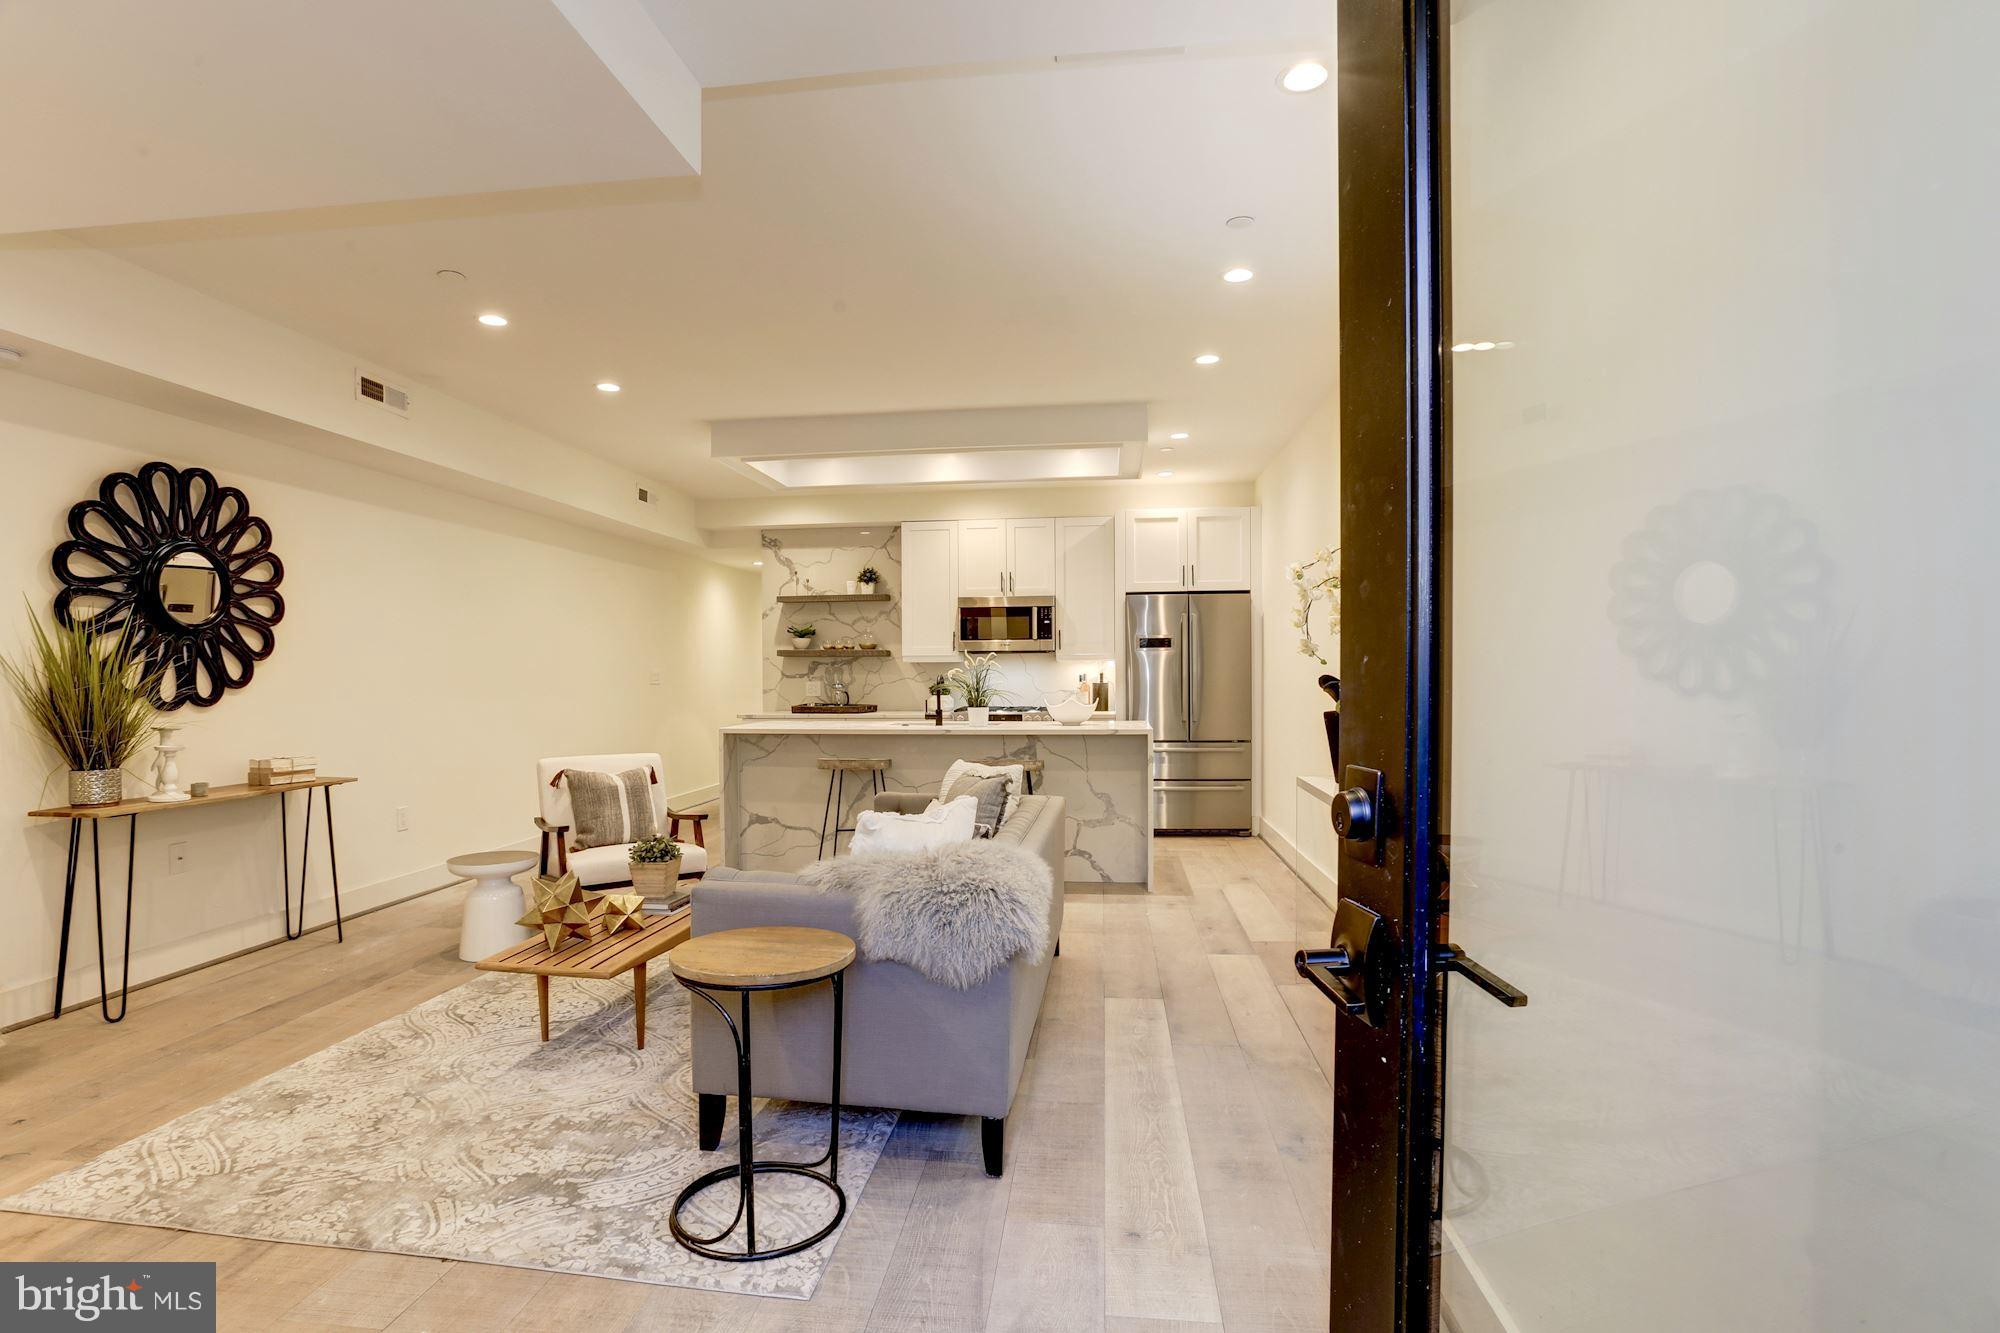 With this price reduction, you have to see this gorgeously appointed condo! #1 is the perfect Columb